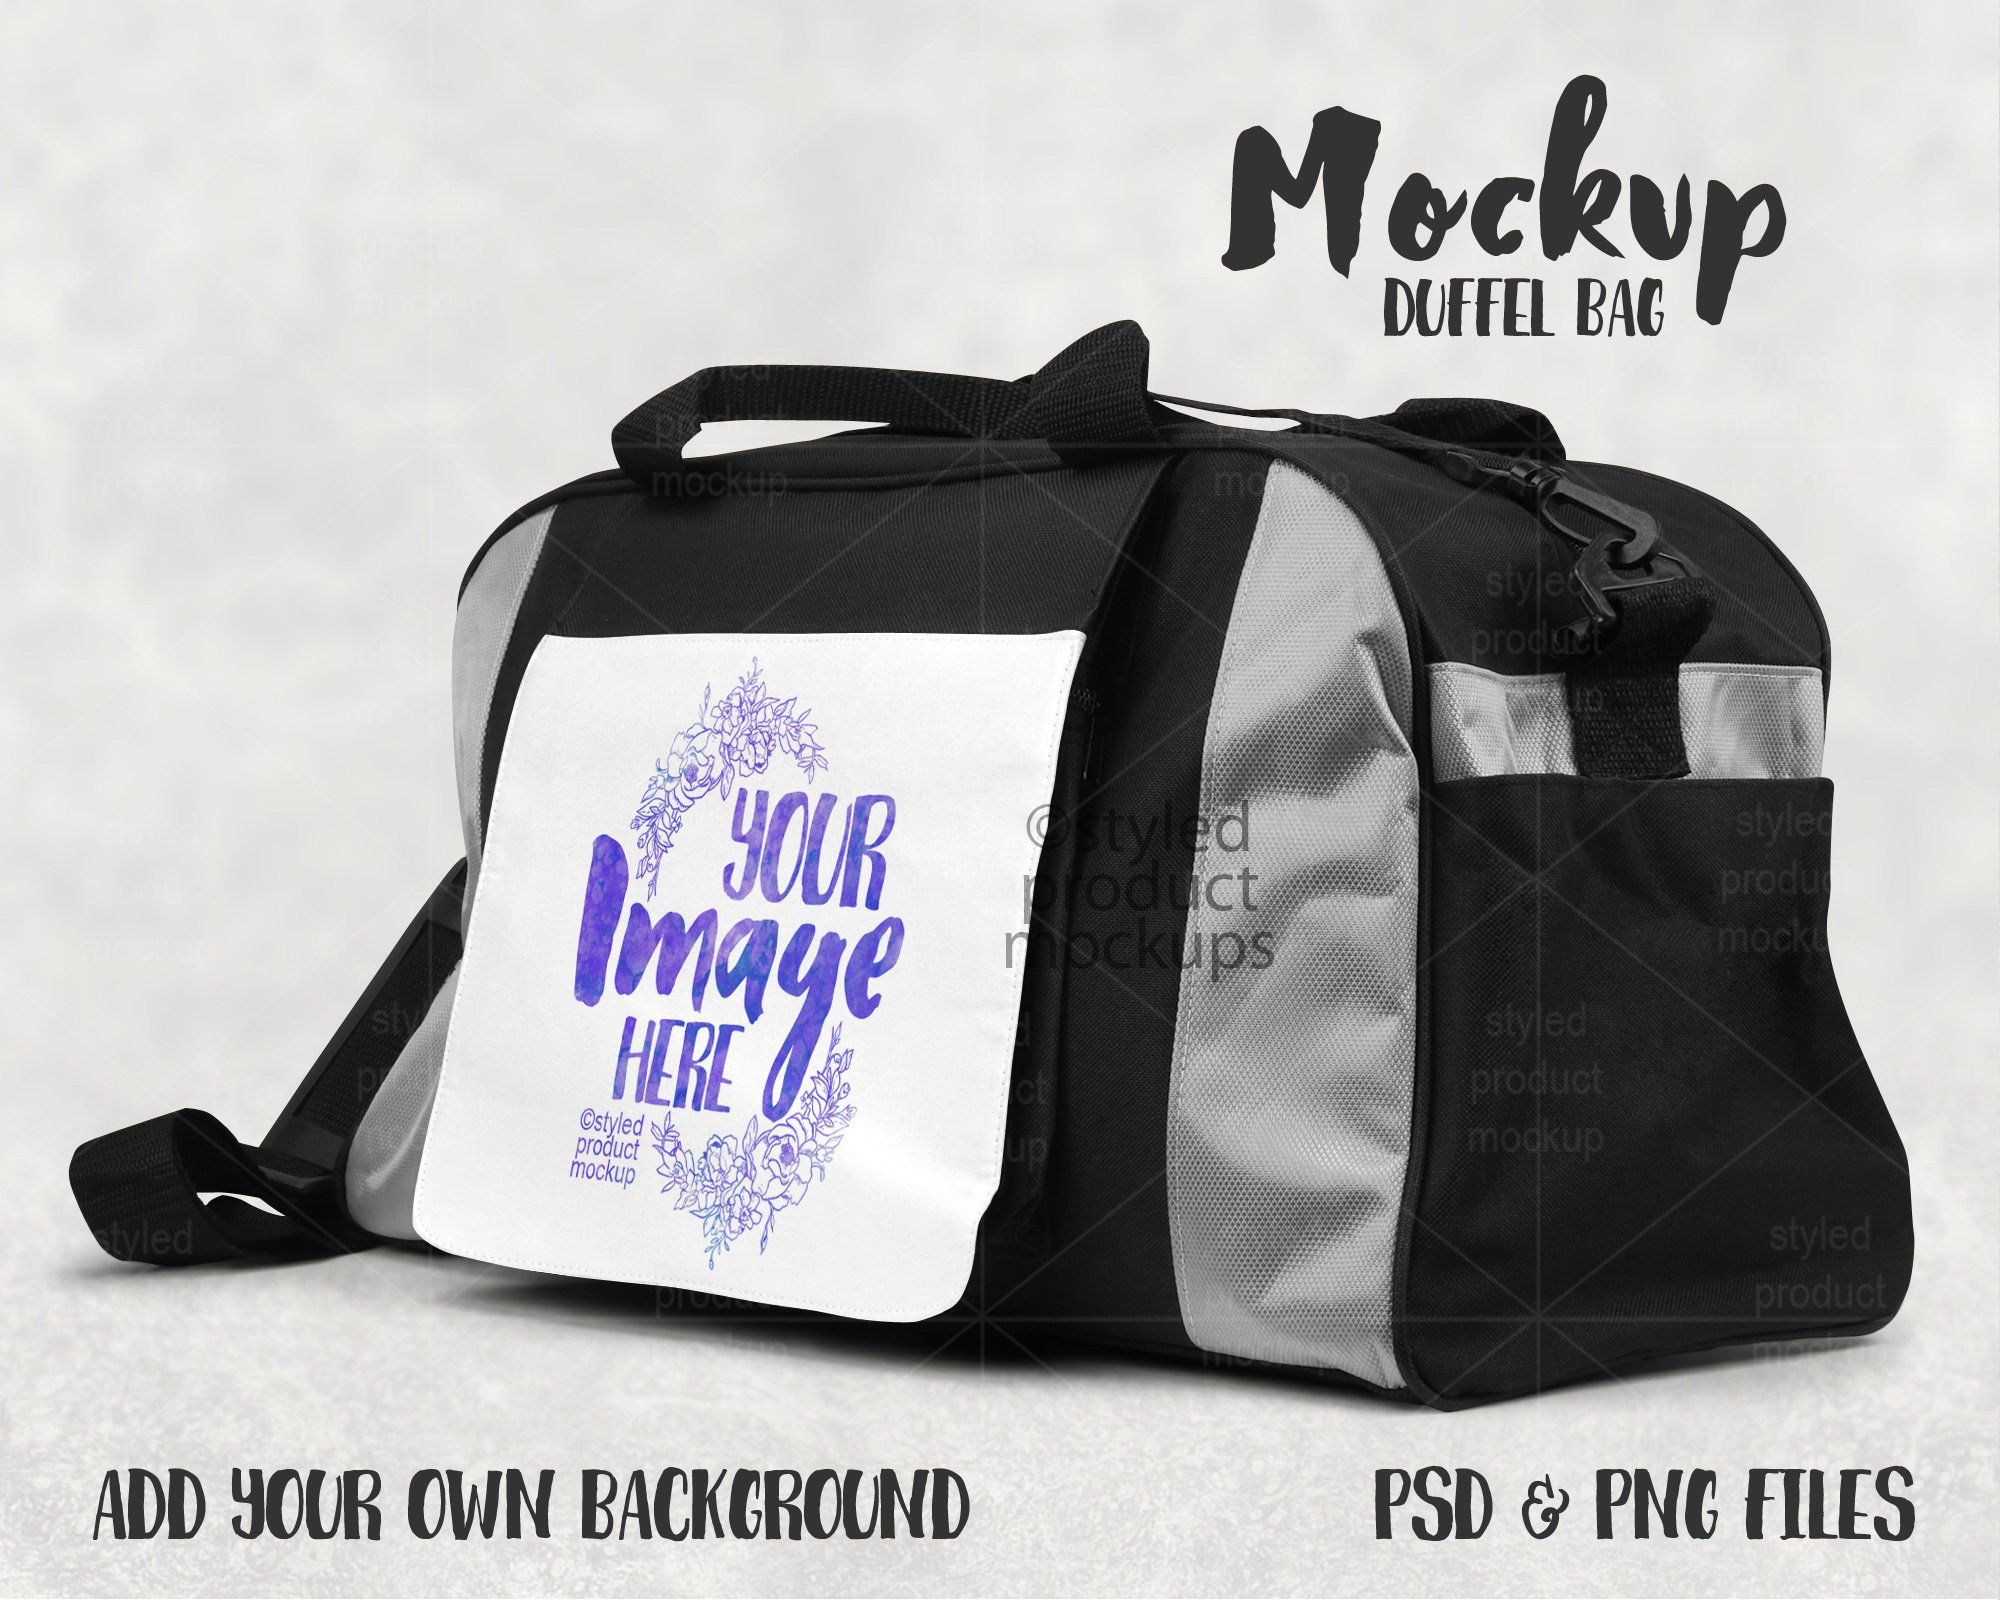 Download Dye Sublimation Duffel Bag Mockup Add Your Own Image And Background Bag Mockup Duffel Duffel Bag